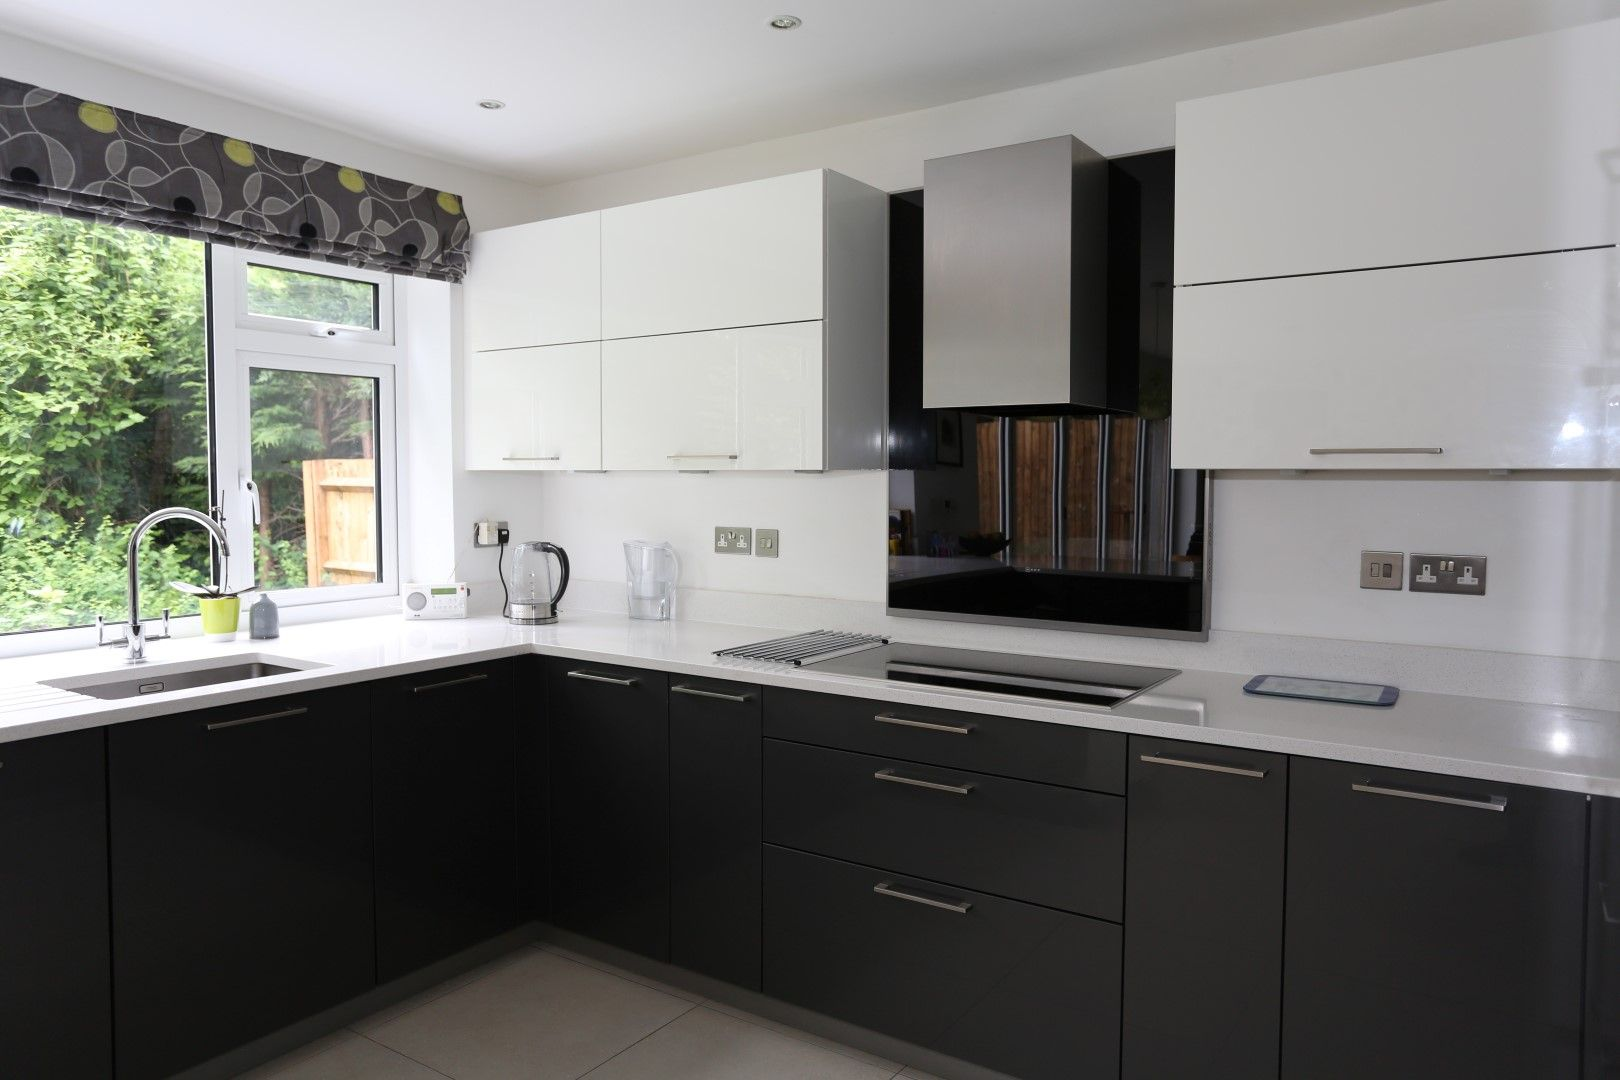 Best Shiny Magnolia Cream And Anthracite Grey Kitchen Cube 640 x 480